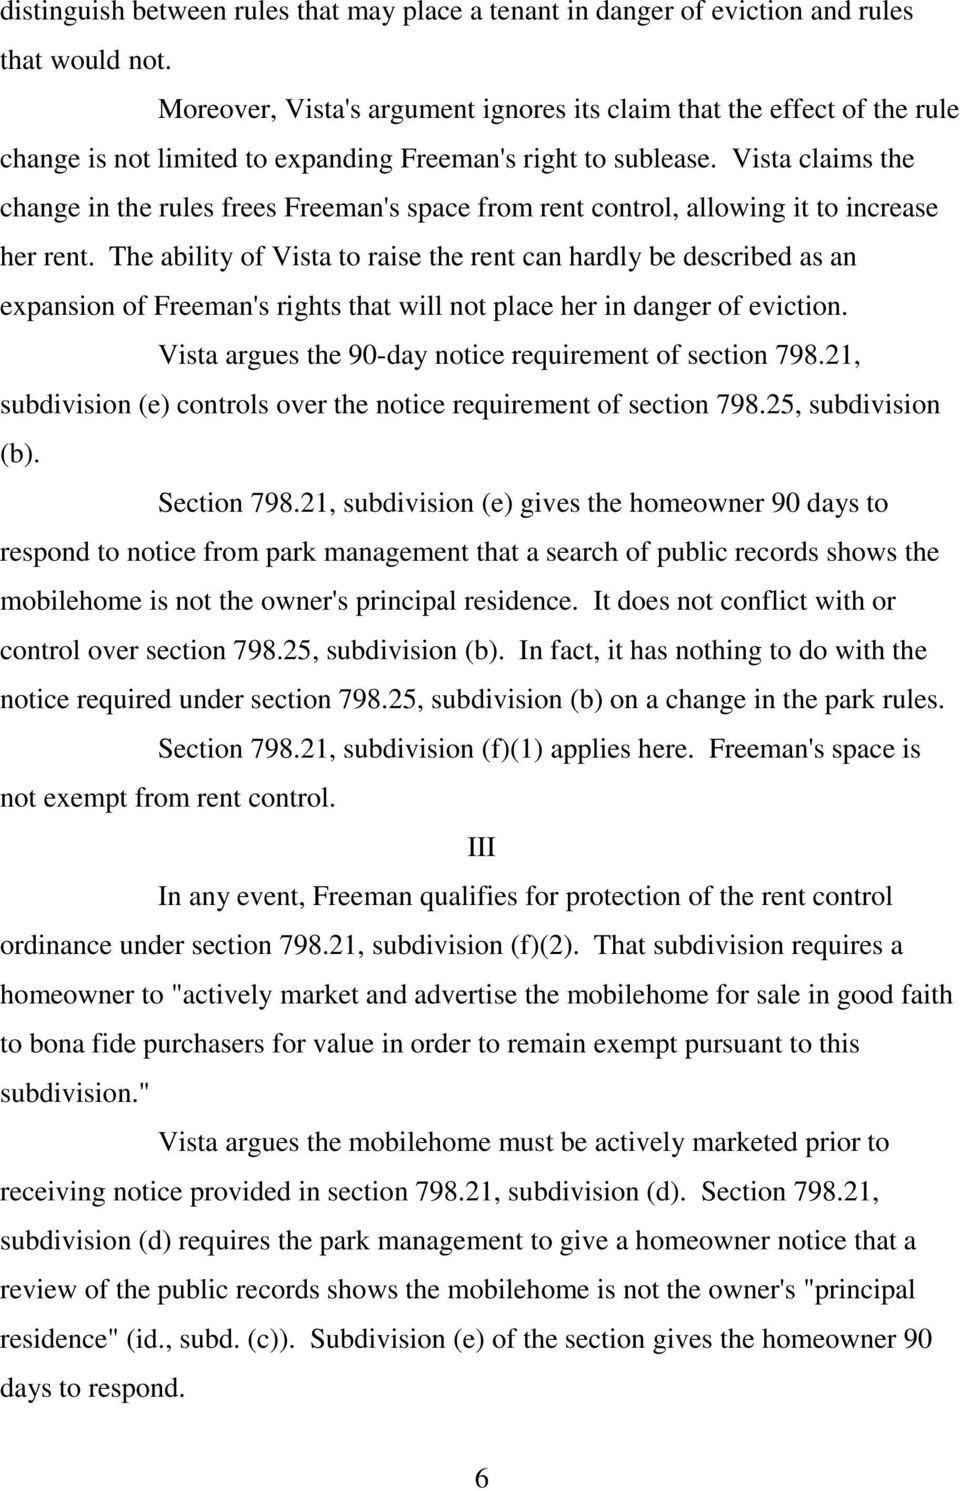 Vista claims the change in the rules frees Freeman's space from rent control, allowing it to increase her rent.